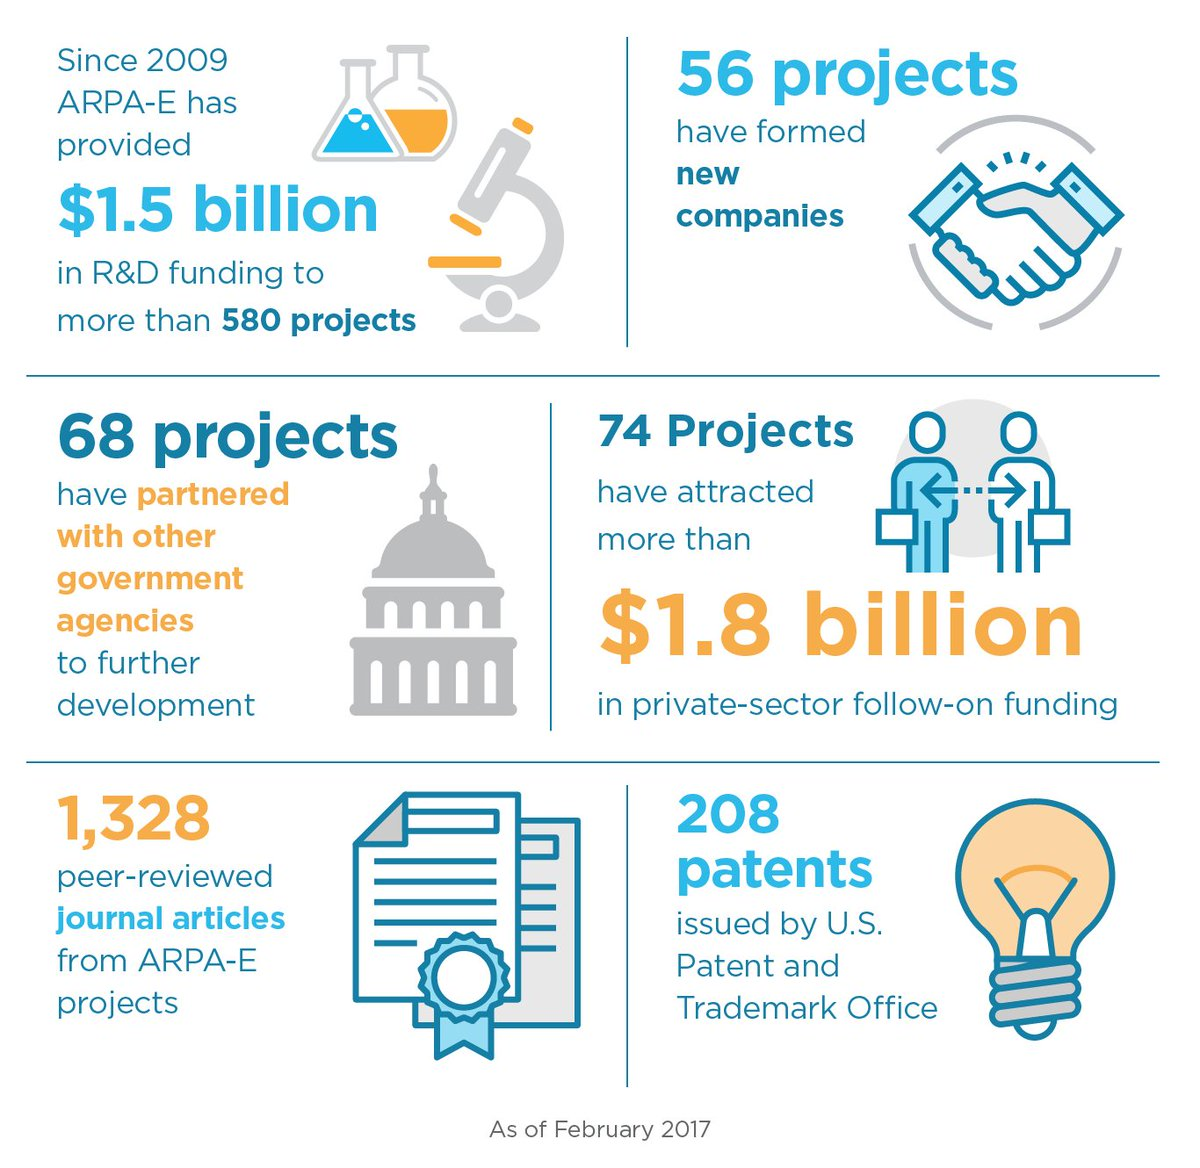 208 patents issued. 1,328 articles published. Learn more about our impact: https://t.co/4sGDjGSStT https://t.co/8aTYXxhBaU